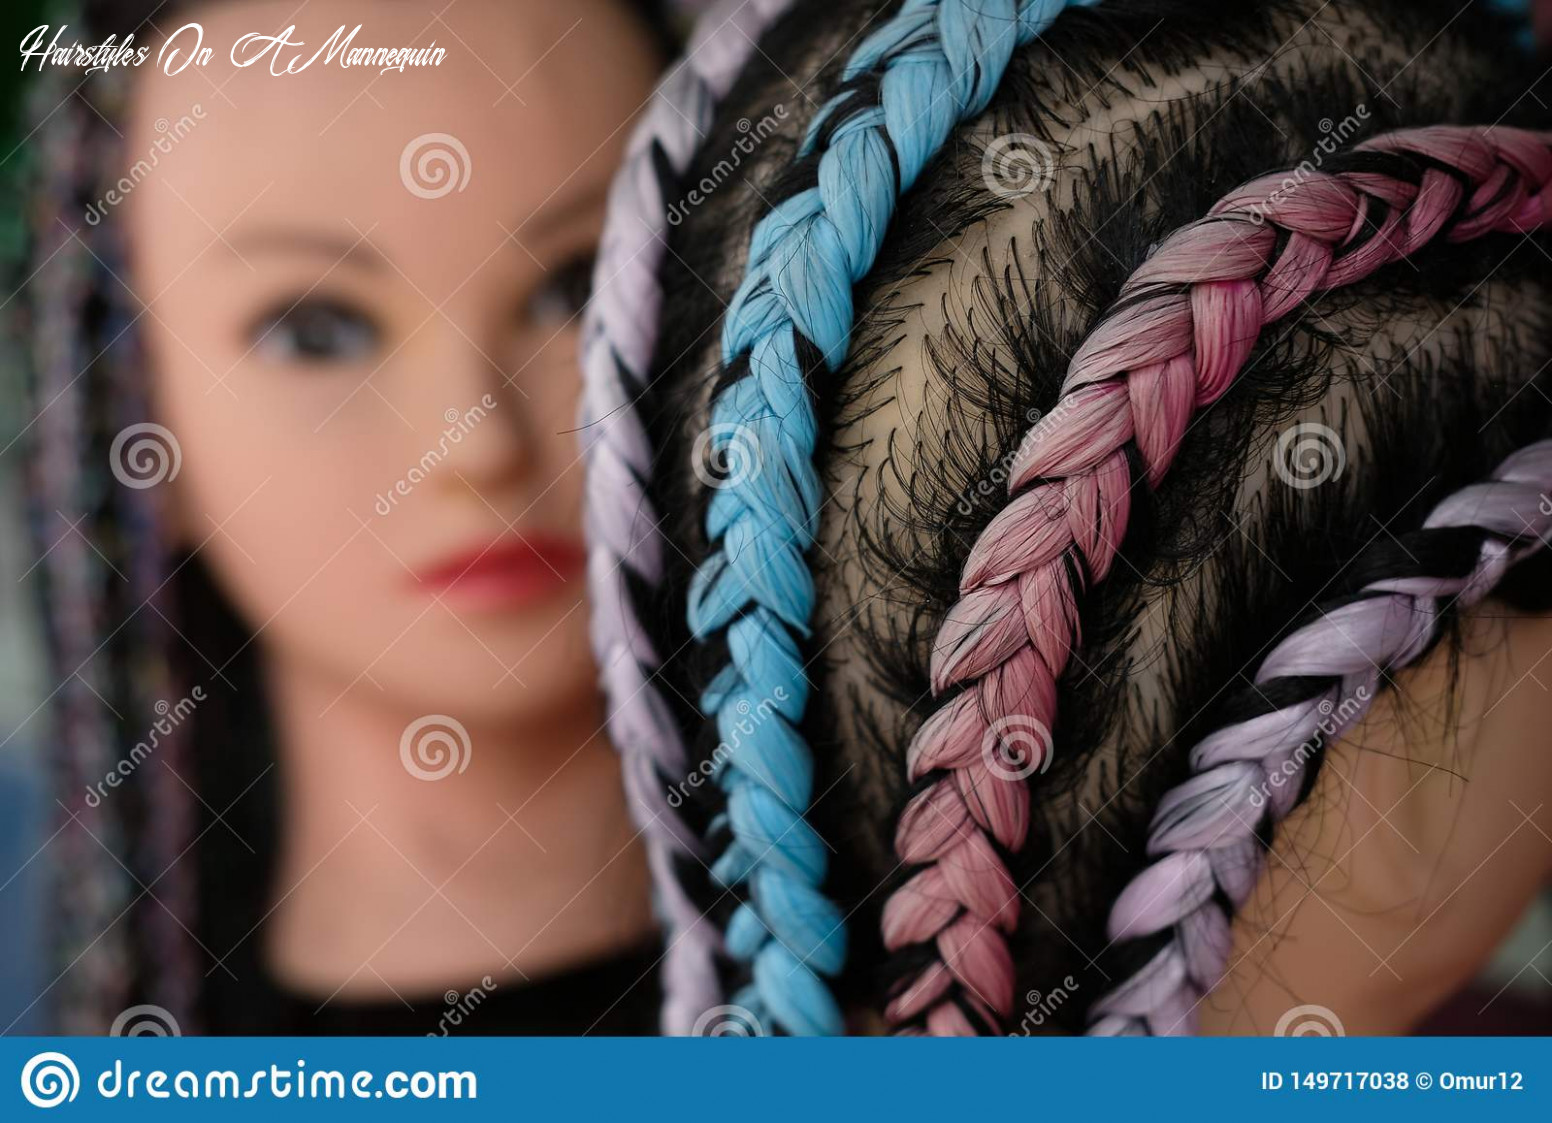 Street Mannequin For Hairstyles And Braids Stock Photo - Image of ...